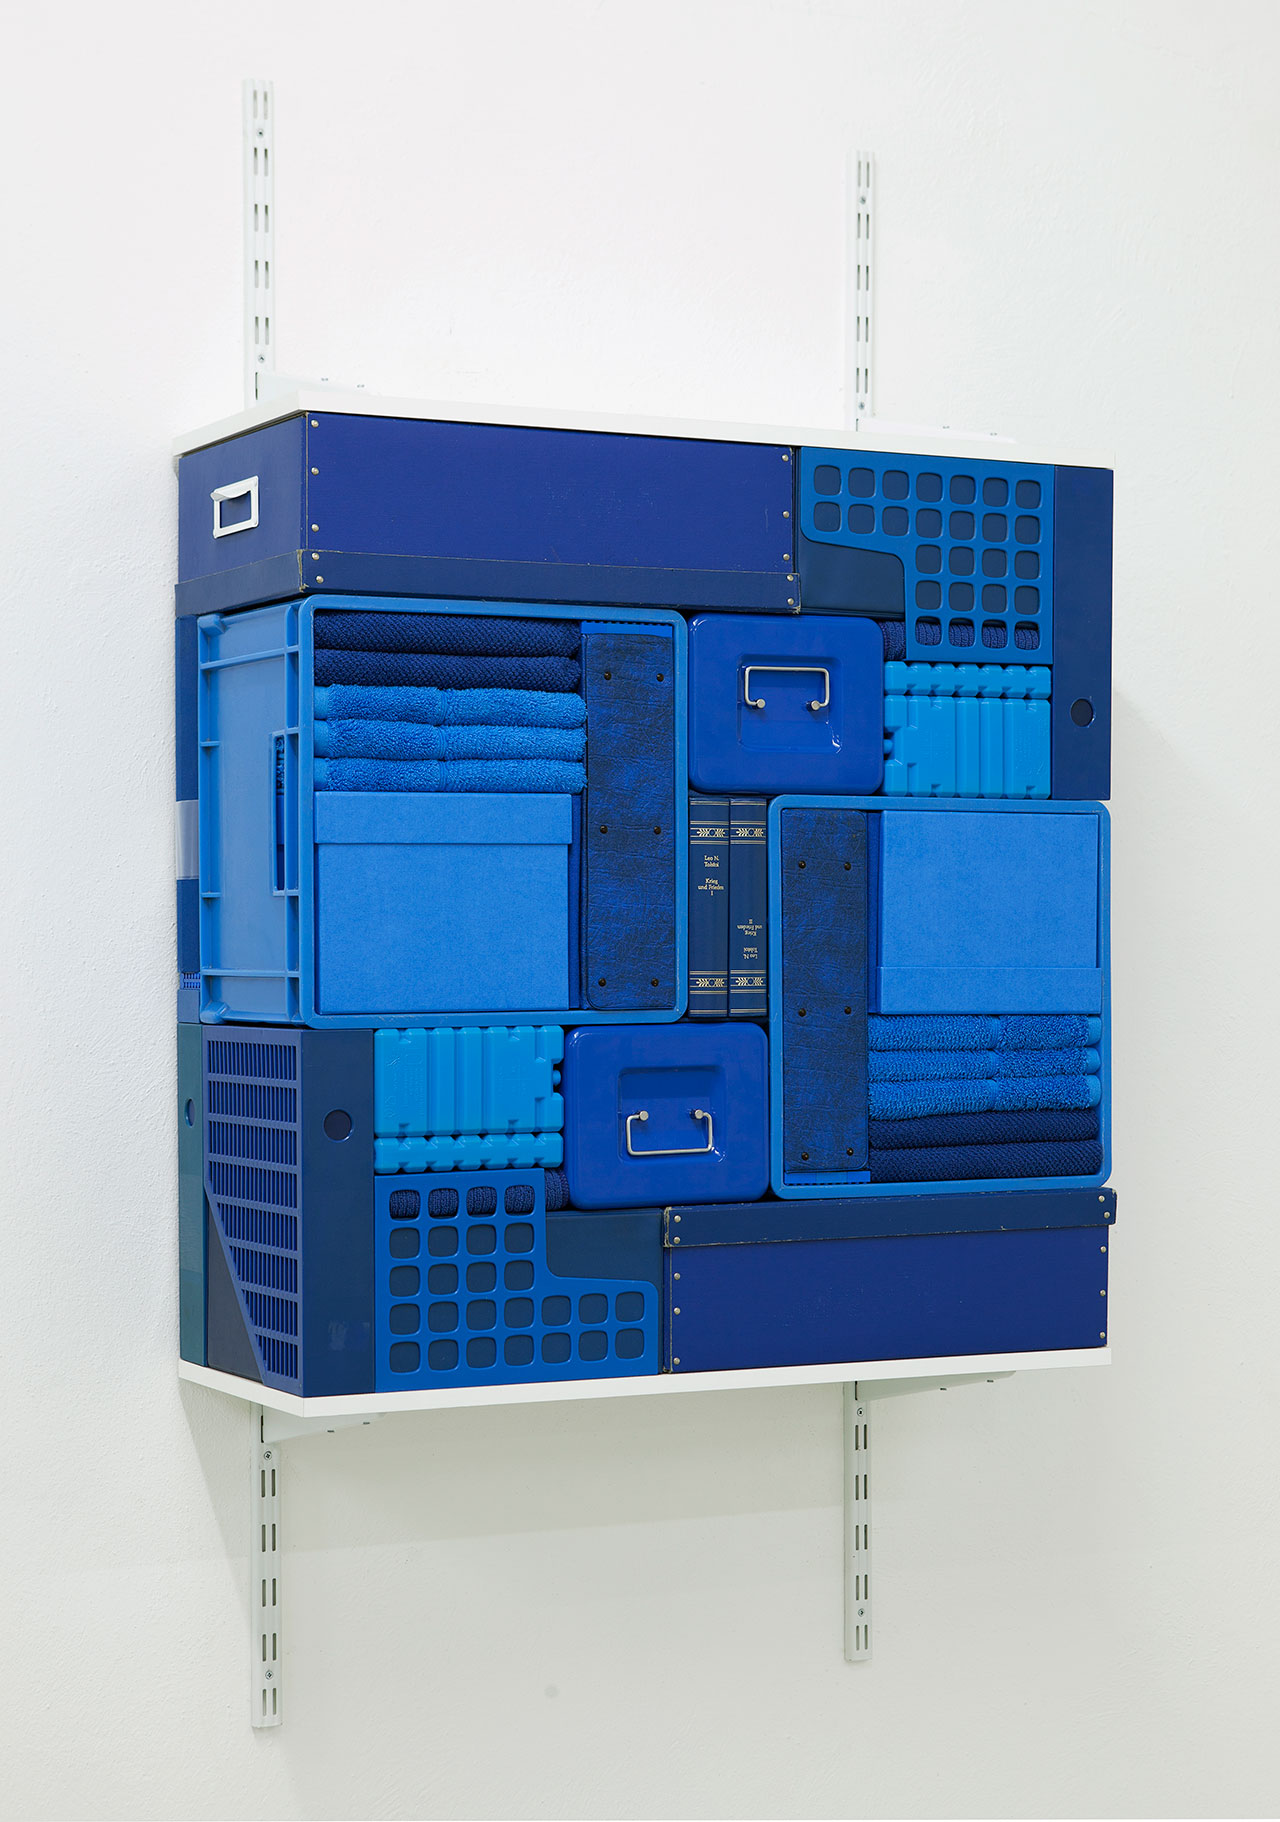 Michael Johansson, Flip Shelf (blue), 2018, blue ordinary items, shelfs, 149,5x80x31 cm. Courtesy: The Flat – Massimo Carasi, Milan. Photo © Michael Johansson.